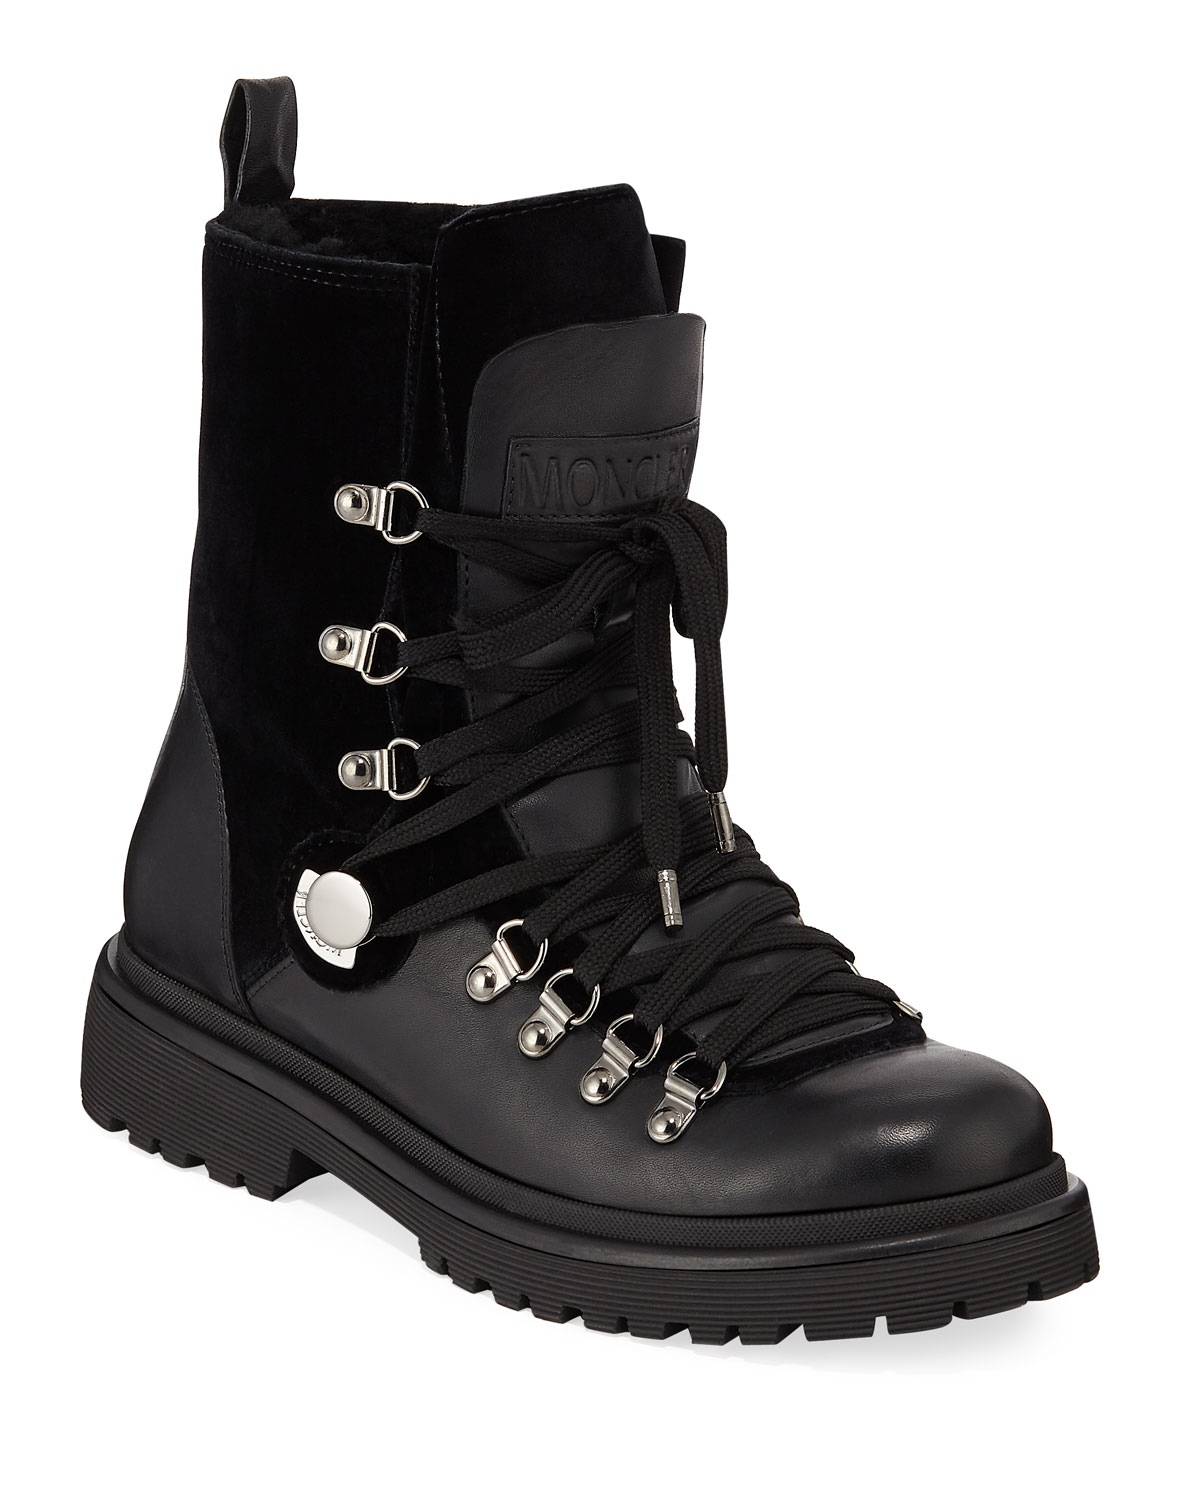 1290a0243a2 Berenice Leather and Velvet Hiker Boots